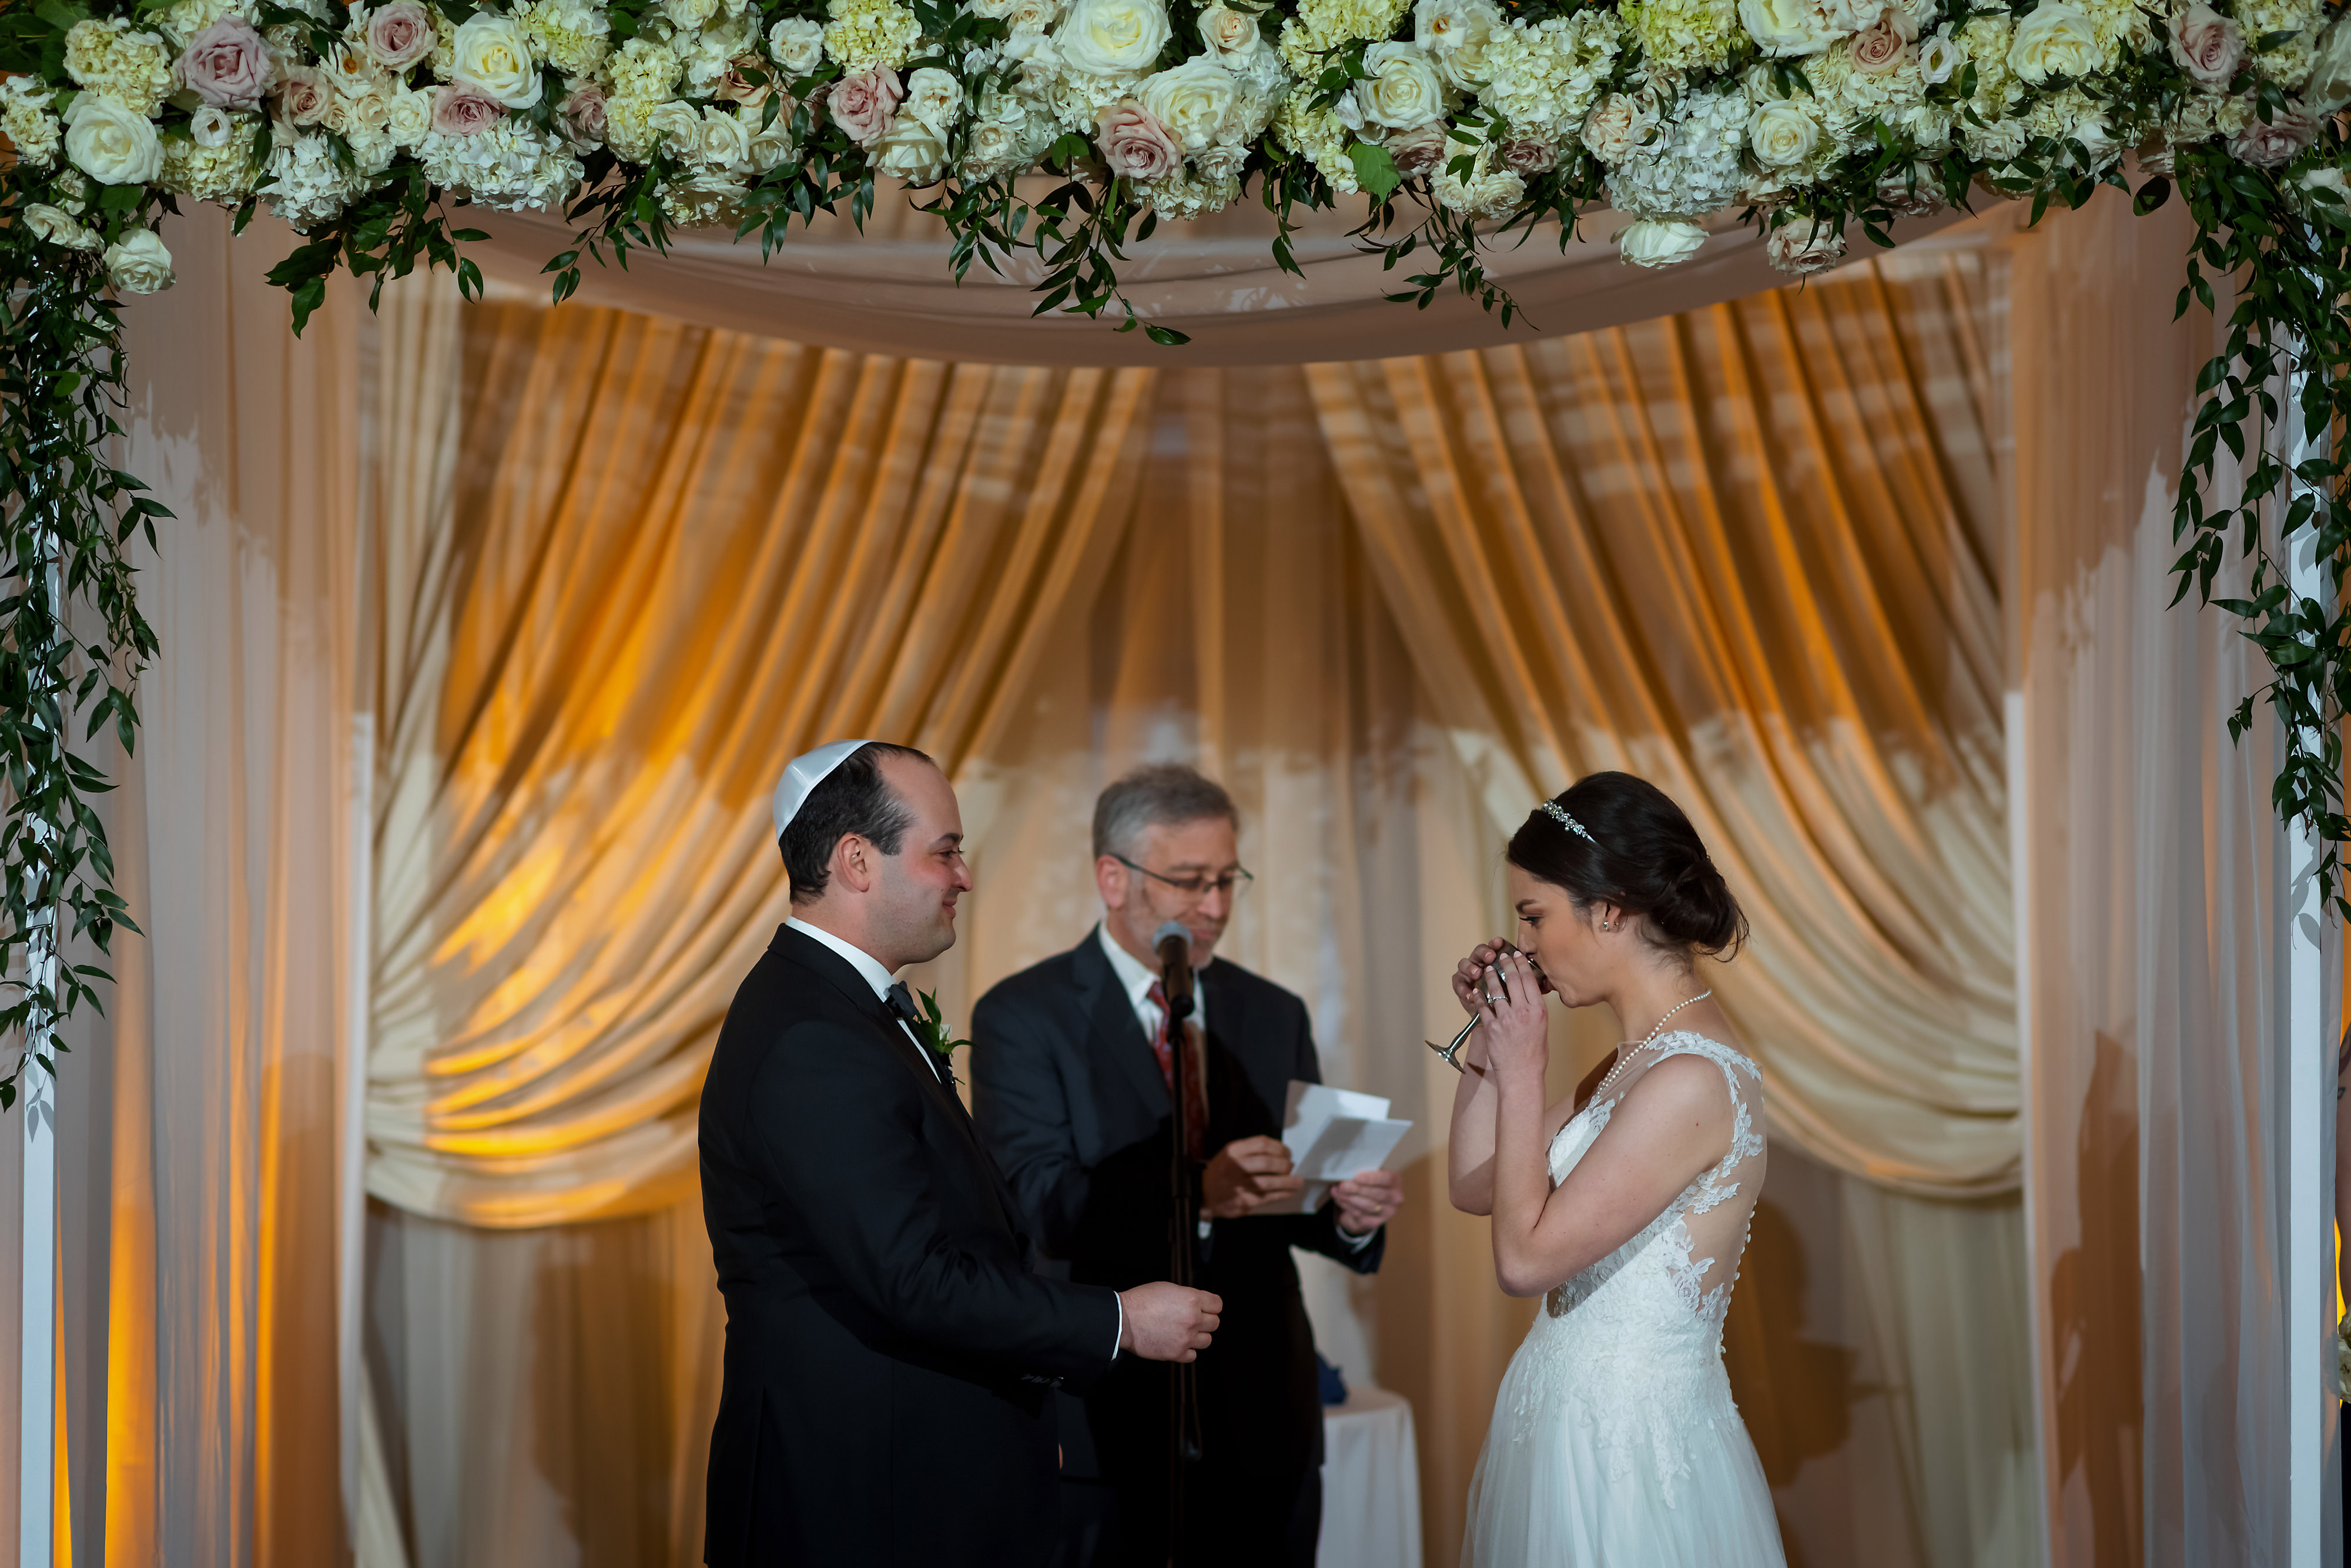 Bride sips from a cup of wine during wedding ceremony at the Rookery Building in Chicago